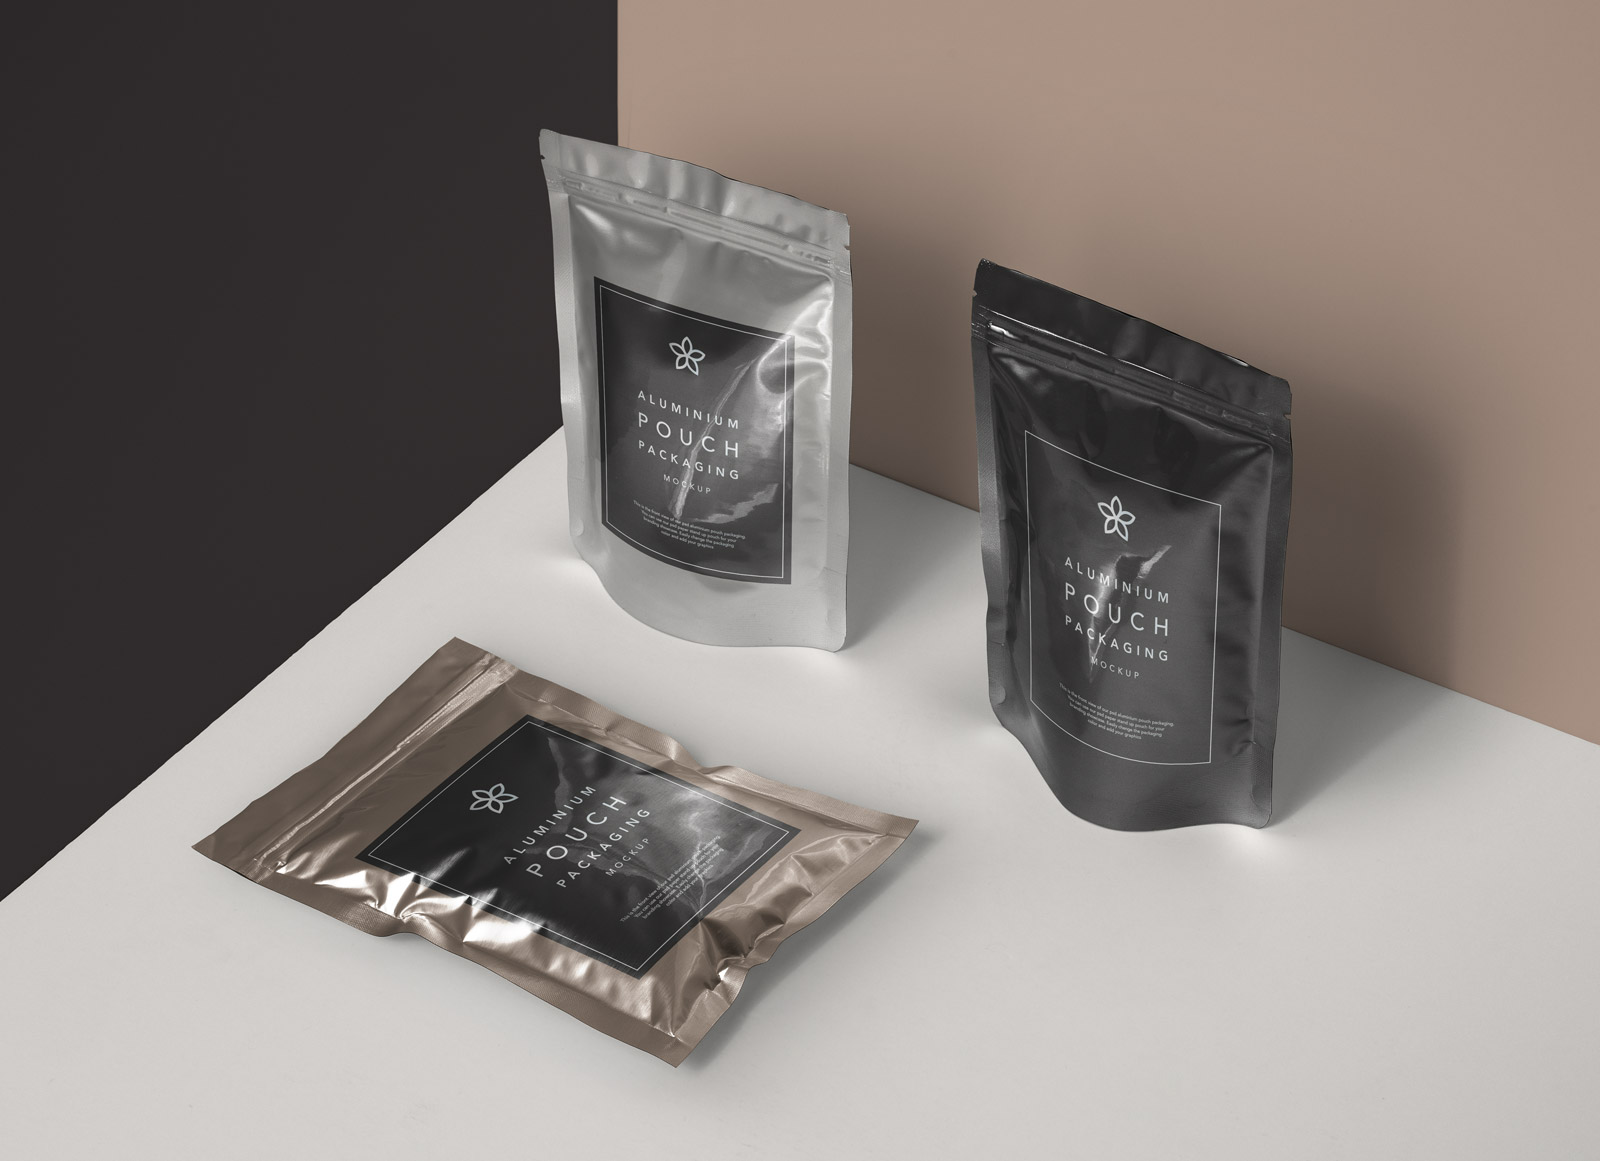 Free Aluminium Foil Pouch Packaging Mockup Psd Good Mockups